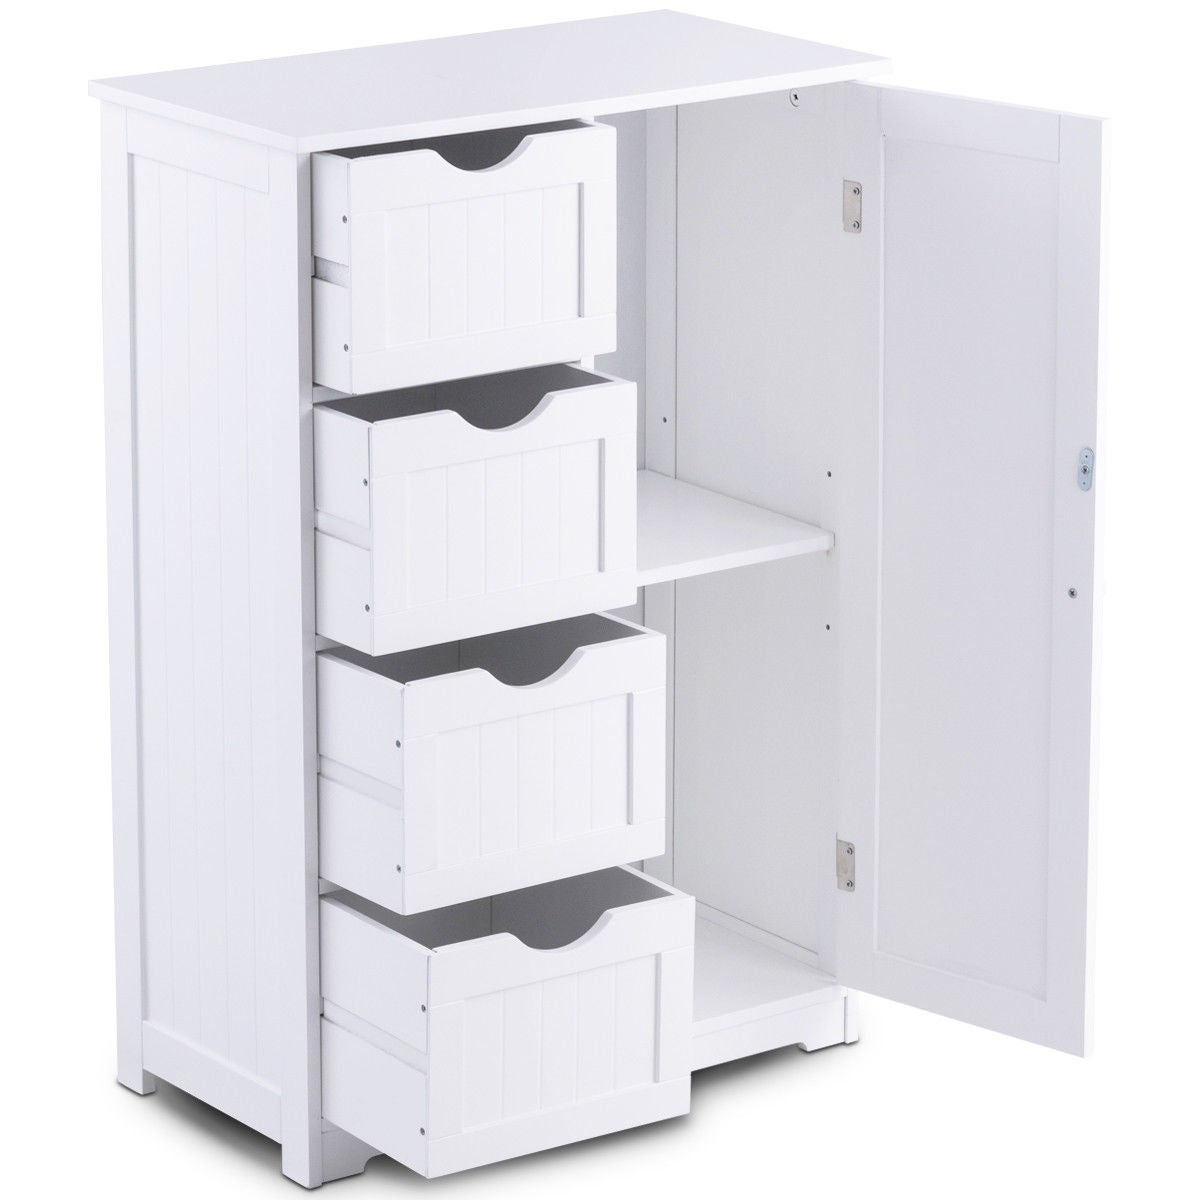 Costway Wooden 4 Drawer Bathroom Cabinet Storage Cupboard 2 Shelves Free Standing White Shipping Today 19817490